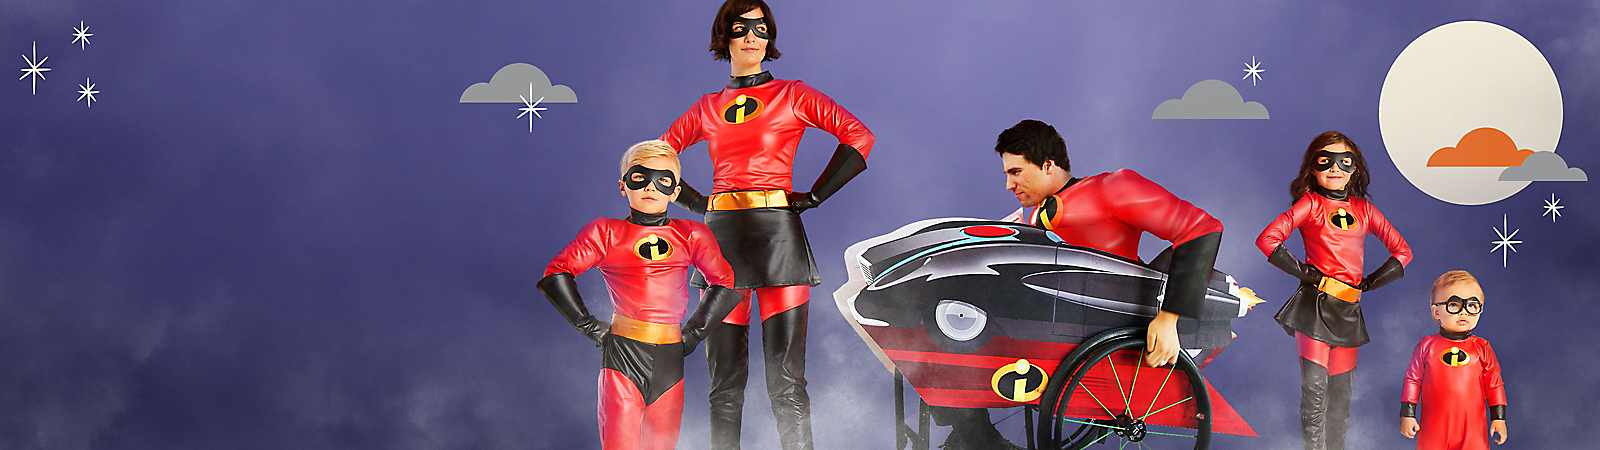 Background image of Family Halloween Costumes